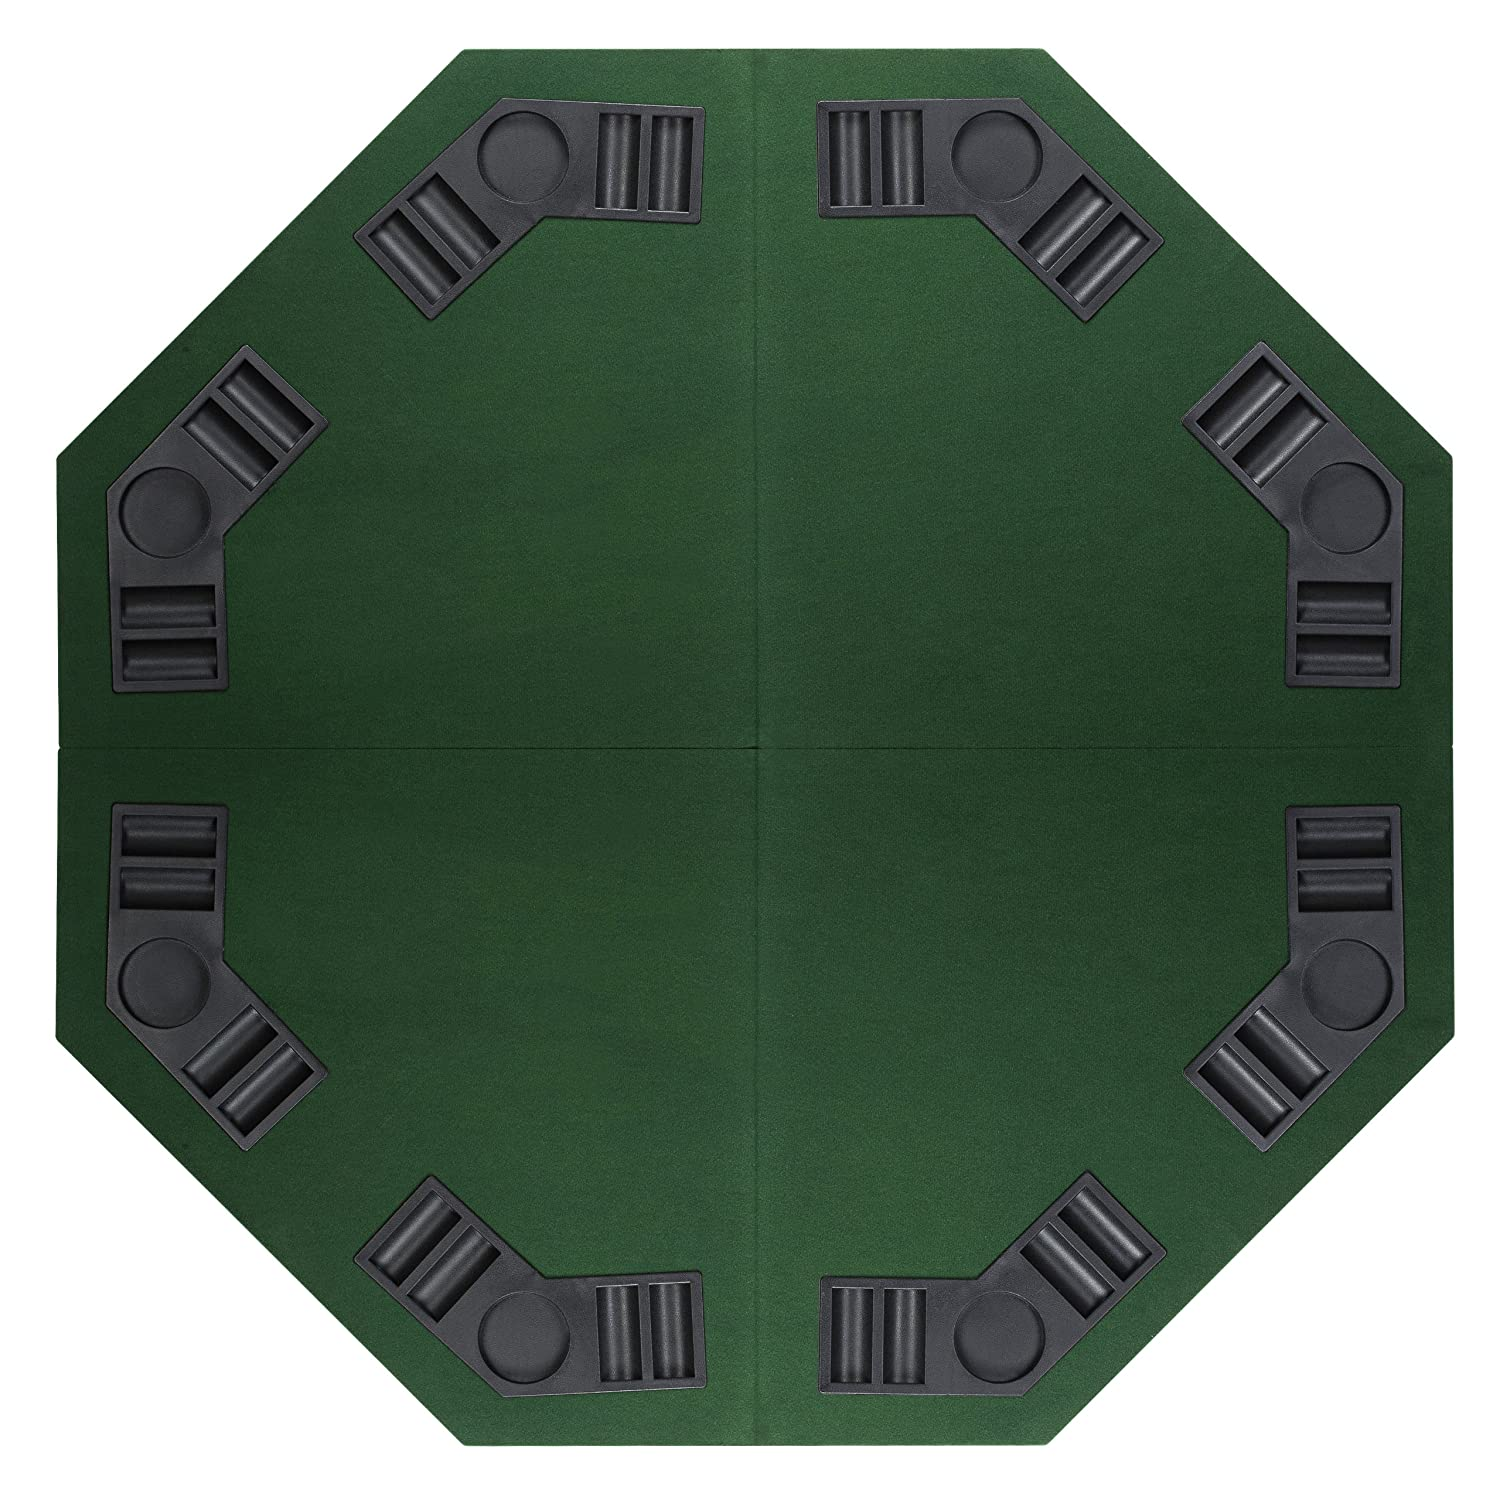 """eSecure 1 2m 48"""" Poker Table Top for 8 Players with Poker"""